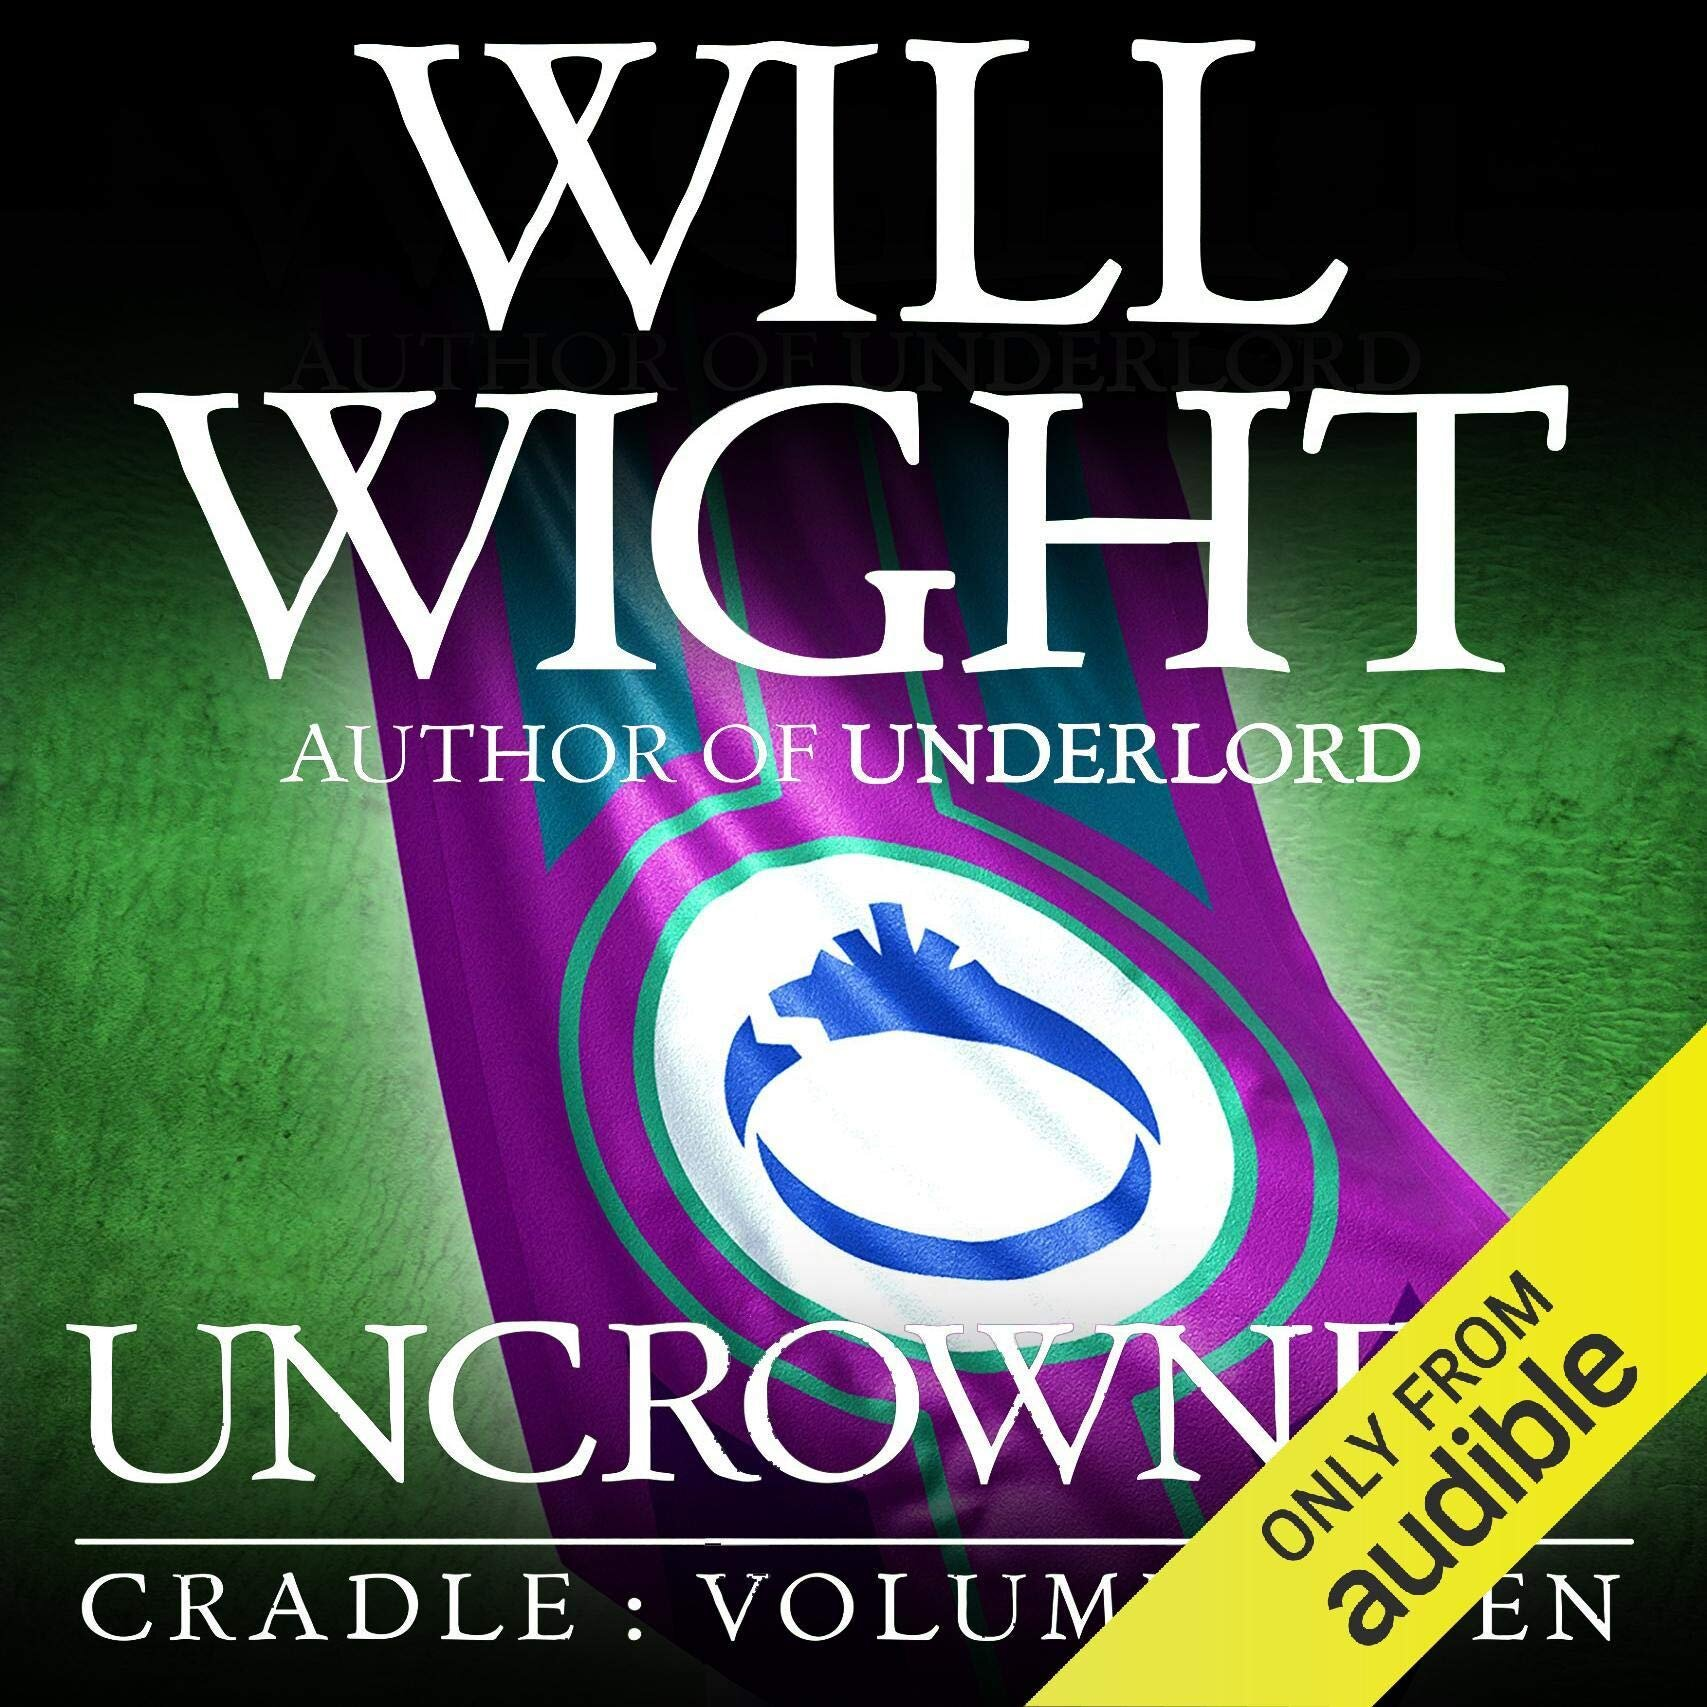 UNCROWNED BY WILL WIGHT PUBLISHED HIDDEN GNOME PUBLISHING SEPTEMBER 26, 2019 KINDLE B07X8ZH6BS AUDIBLE B07XTPSFPY